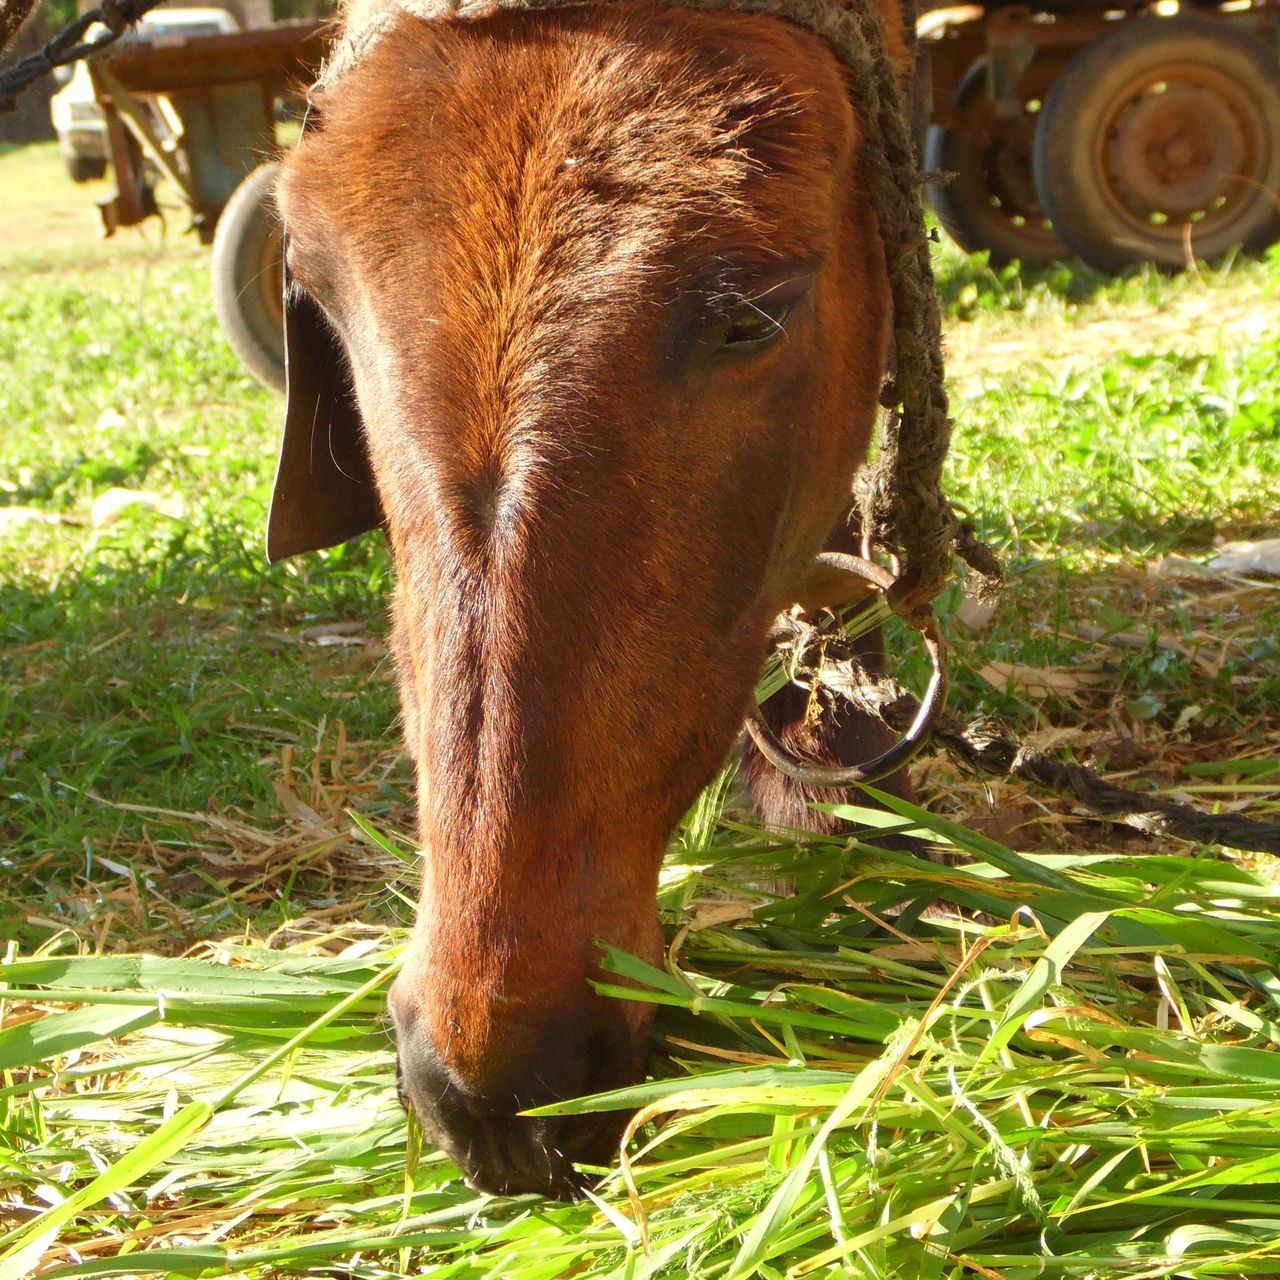 Animal Animal Body Part Animal Head  Animal Themes Animals In The Wild Cheval Close-up Day Domestic Animals Elephant Field Grass Mammal Mule Nature No People One Animal Outdoors Tete De Mule Trunk